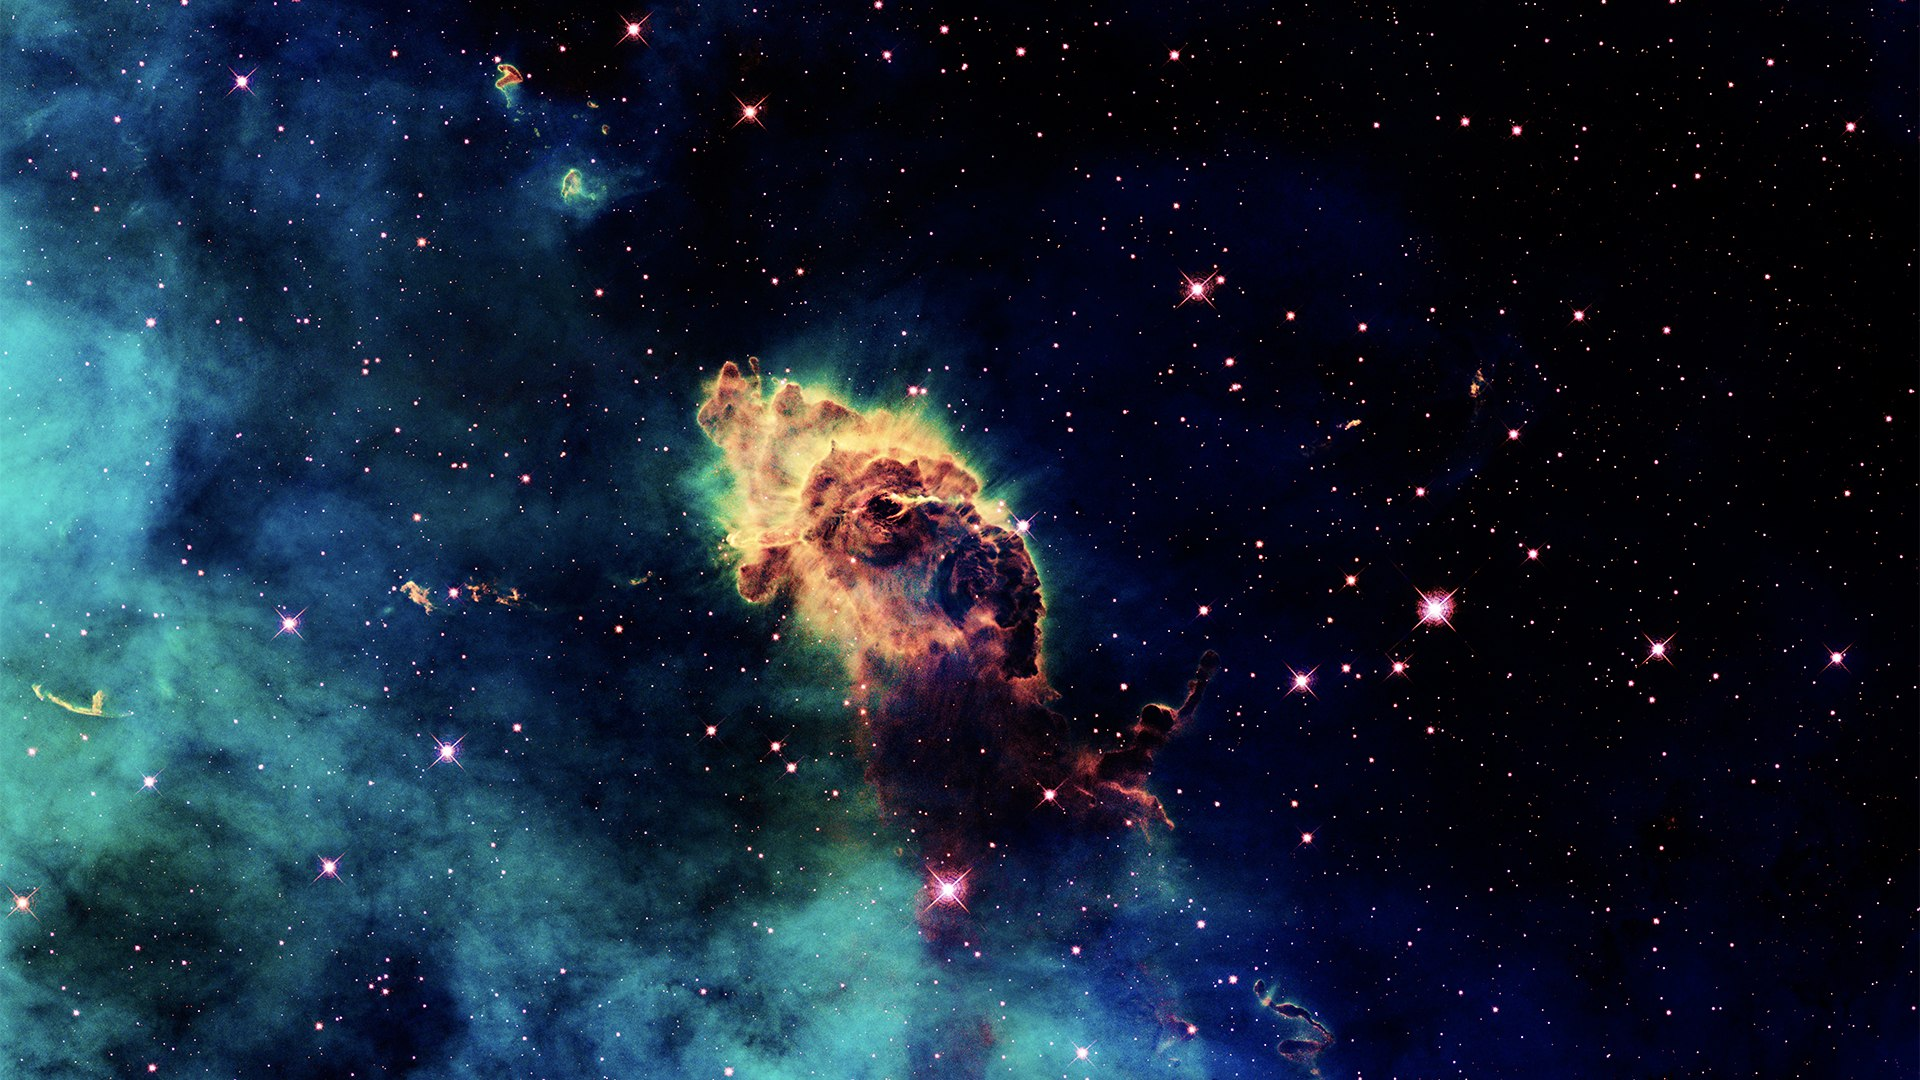 Universe Wallpaper 1080p Hd: 50 HD Space Wallpapers/Backgrounds For Free Download